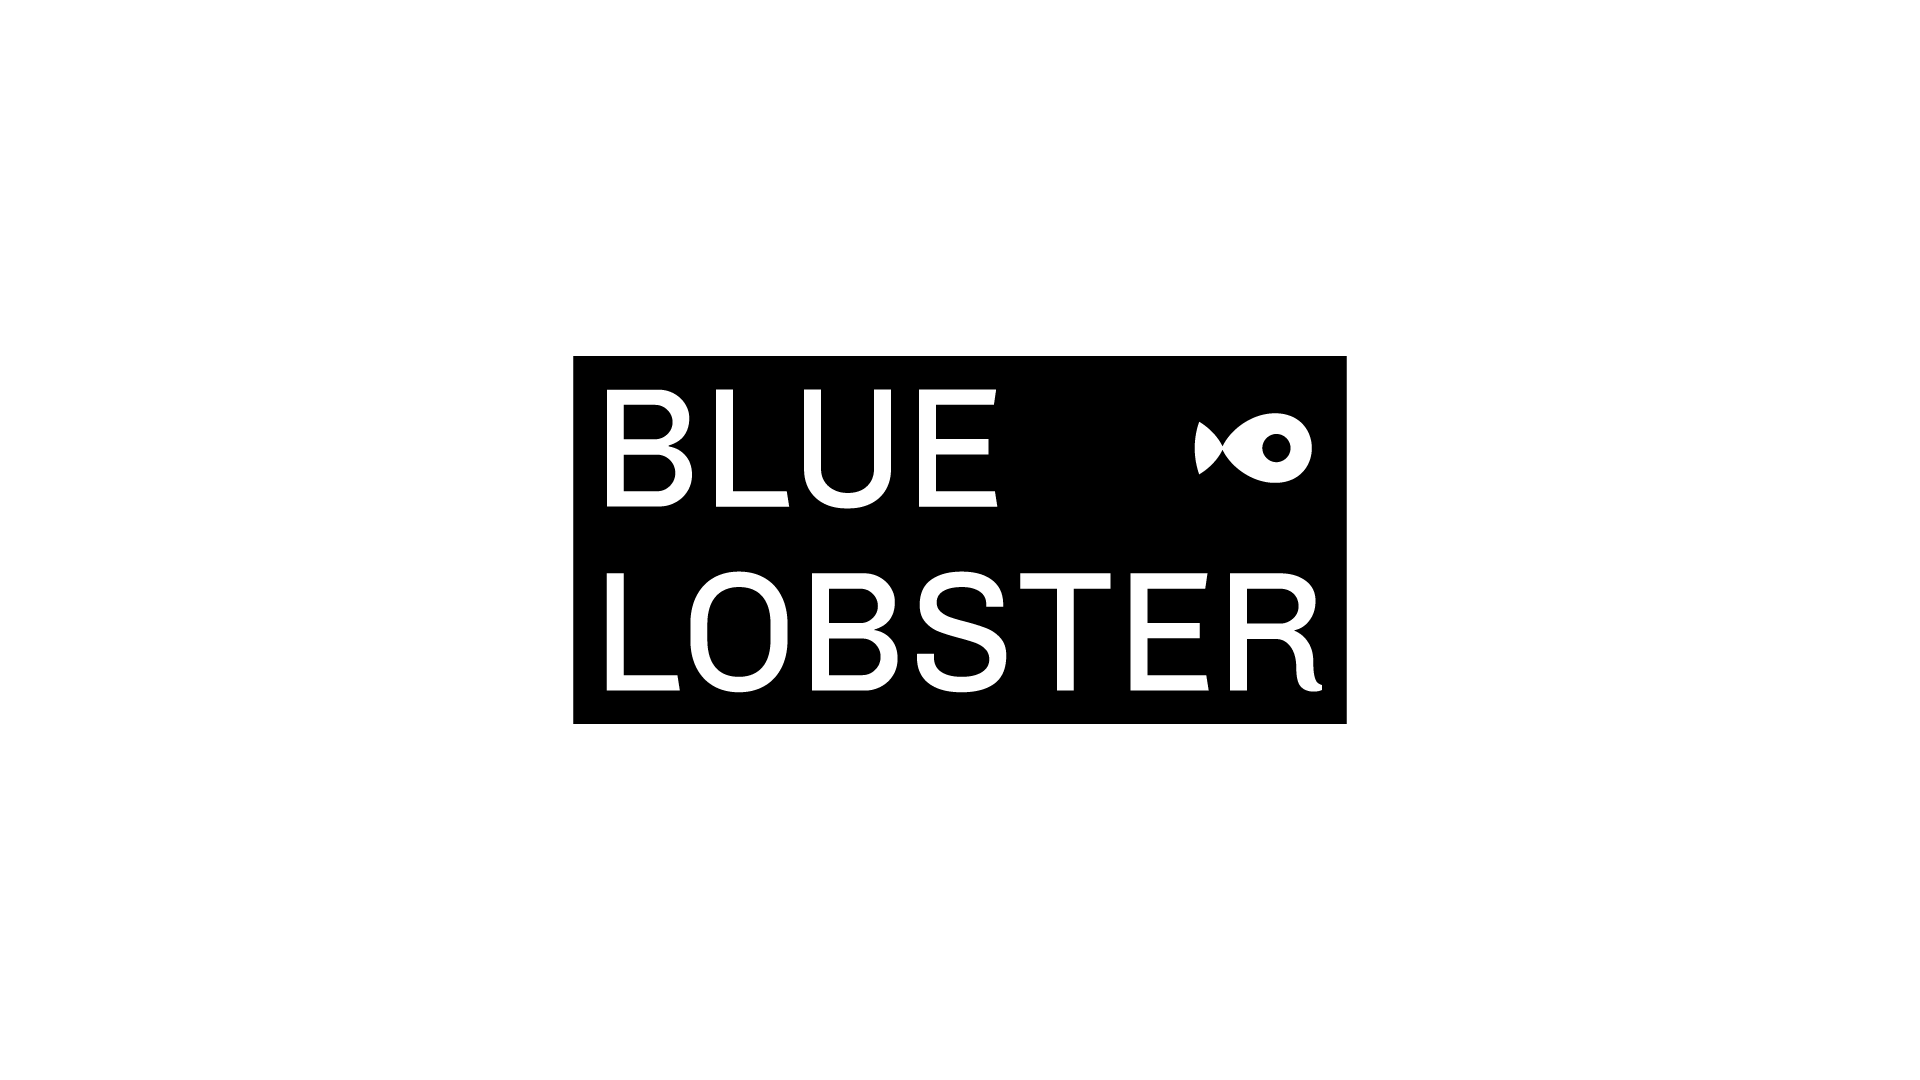 Black and white fish icon and wordmark saying 'BLUE LOBSTER'